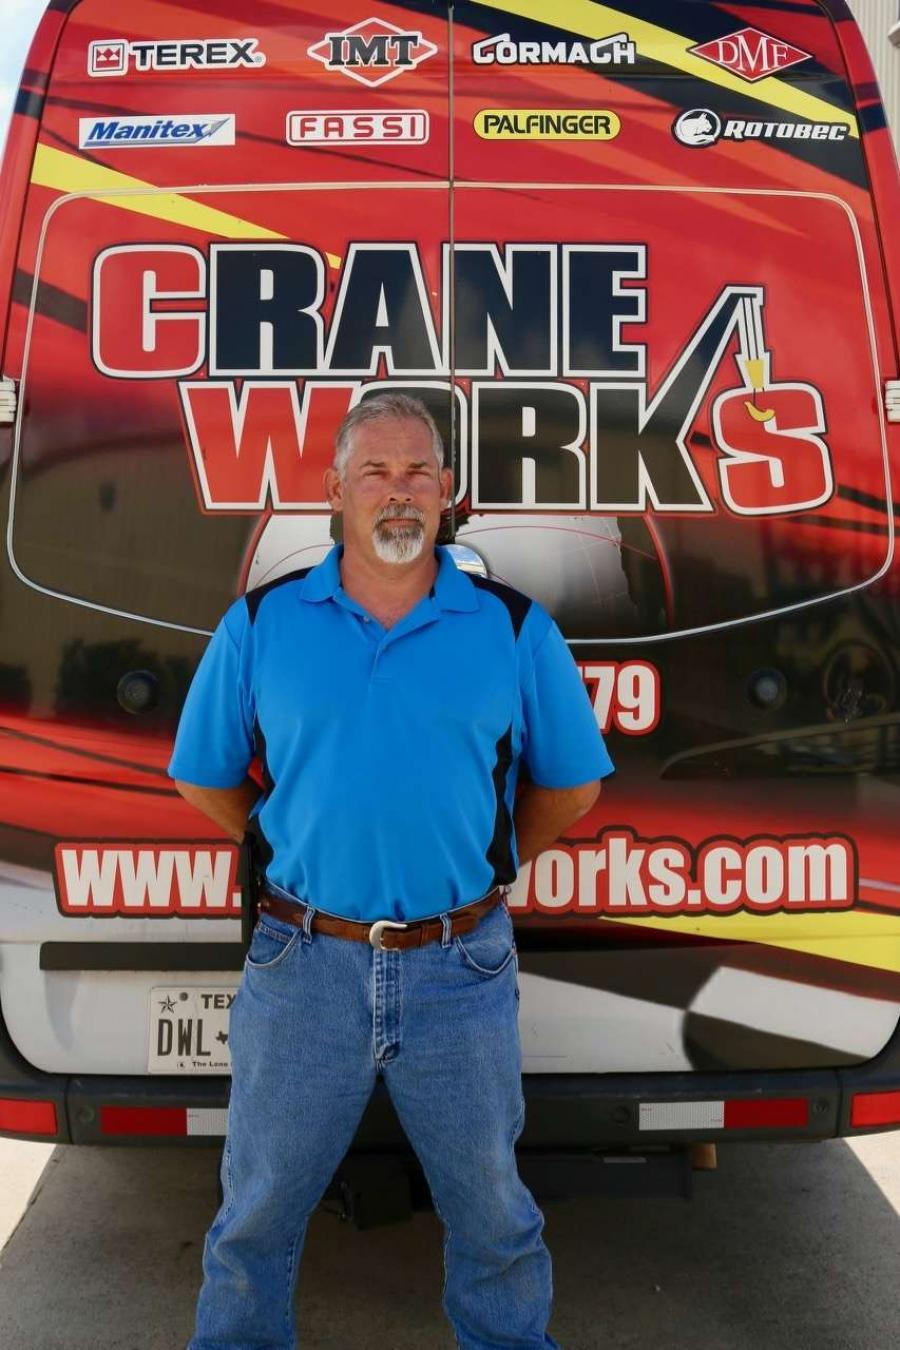 CraneWorks announced Michael Bird as the company's new Director of Product Support on July 14.